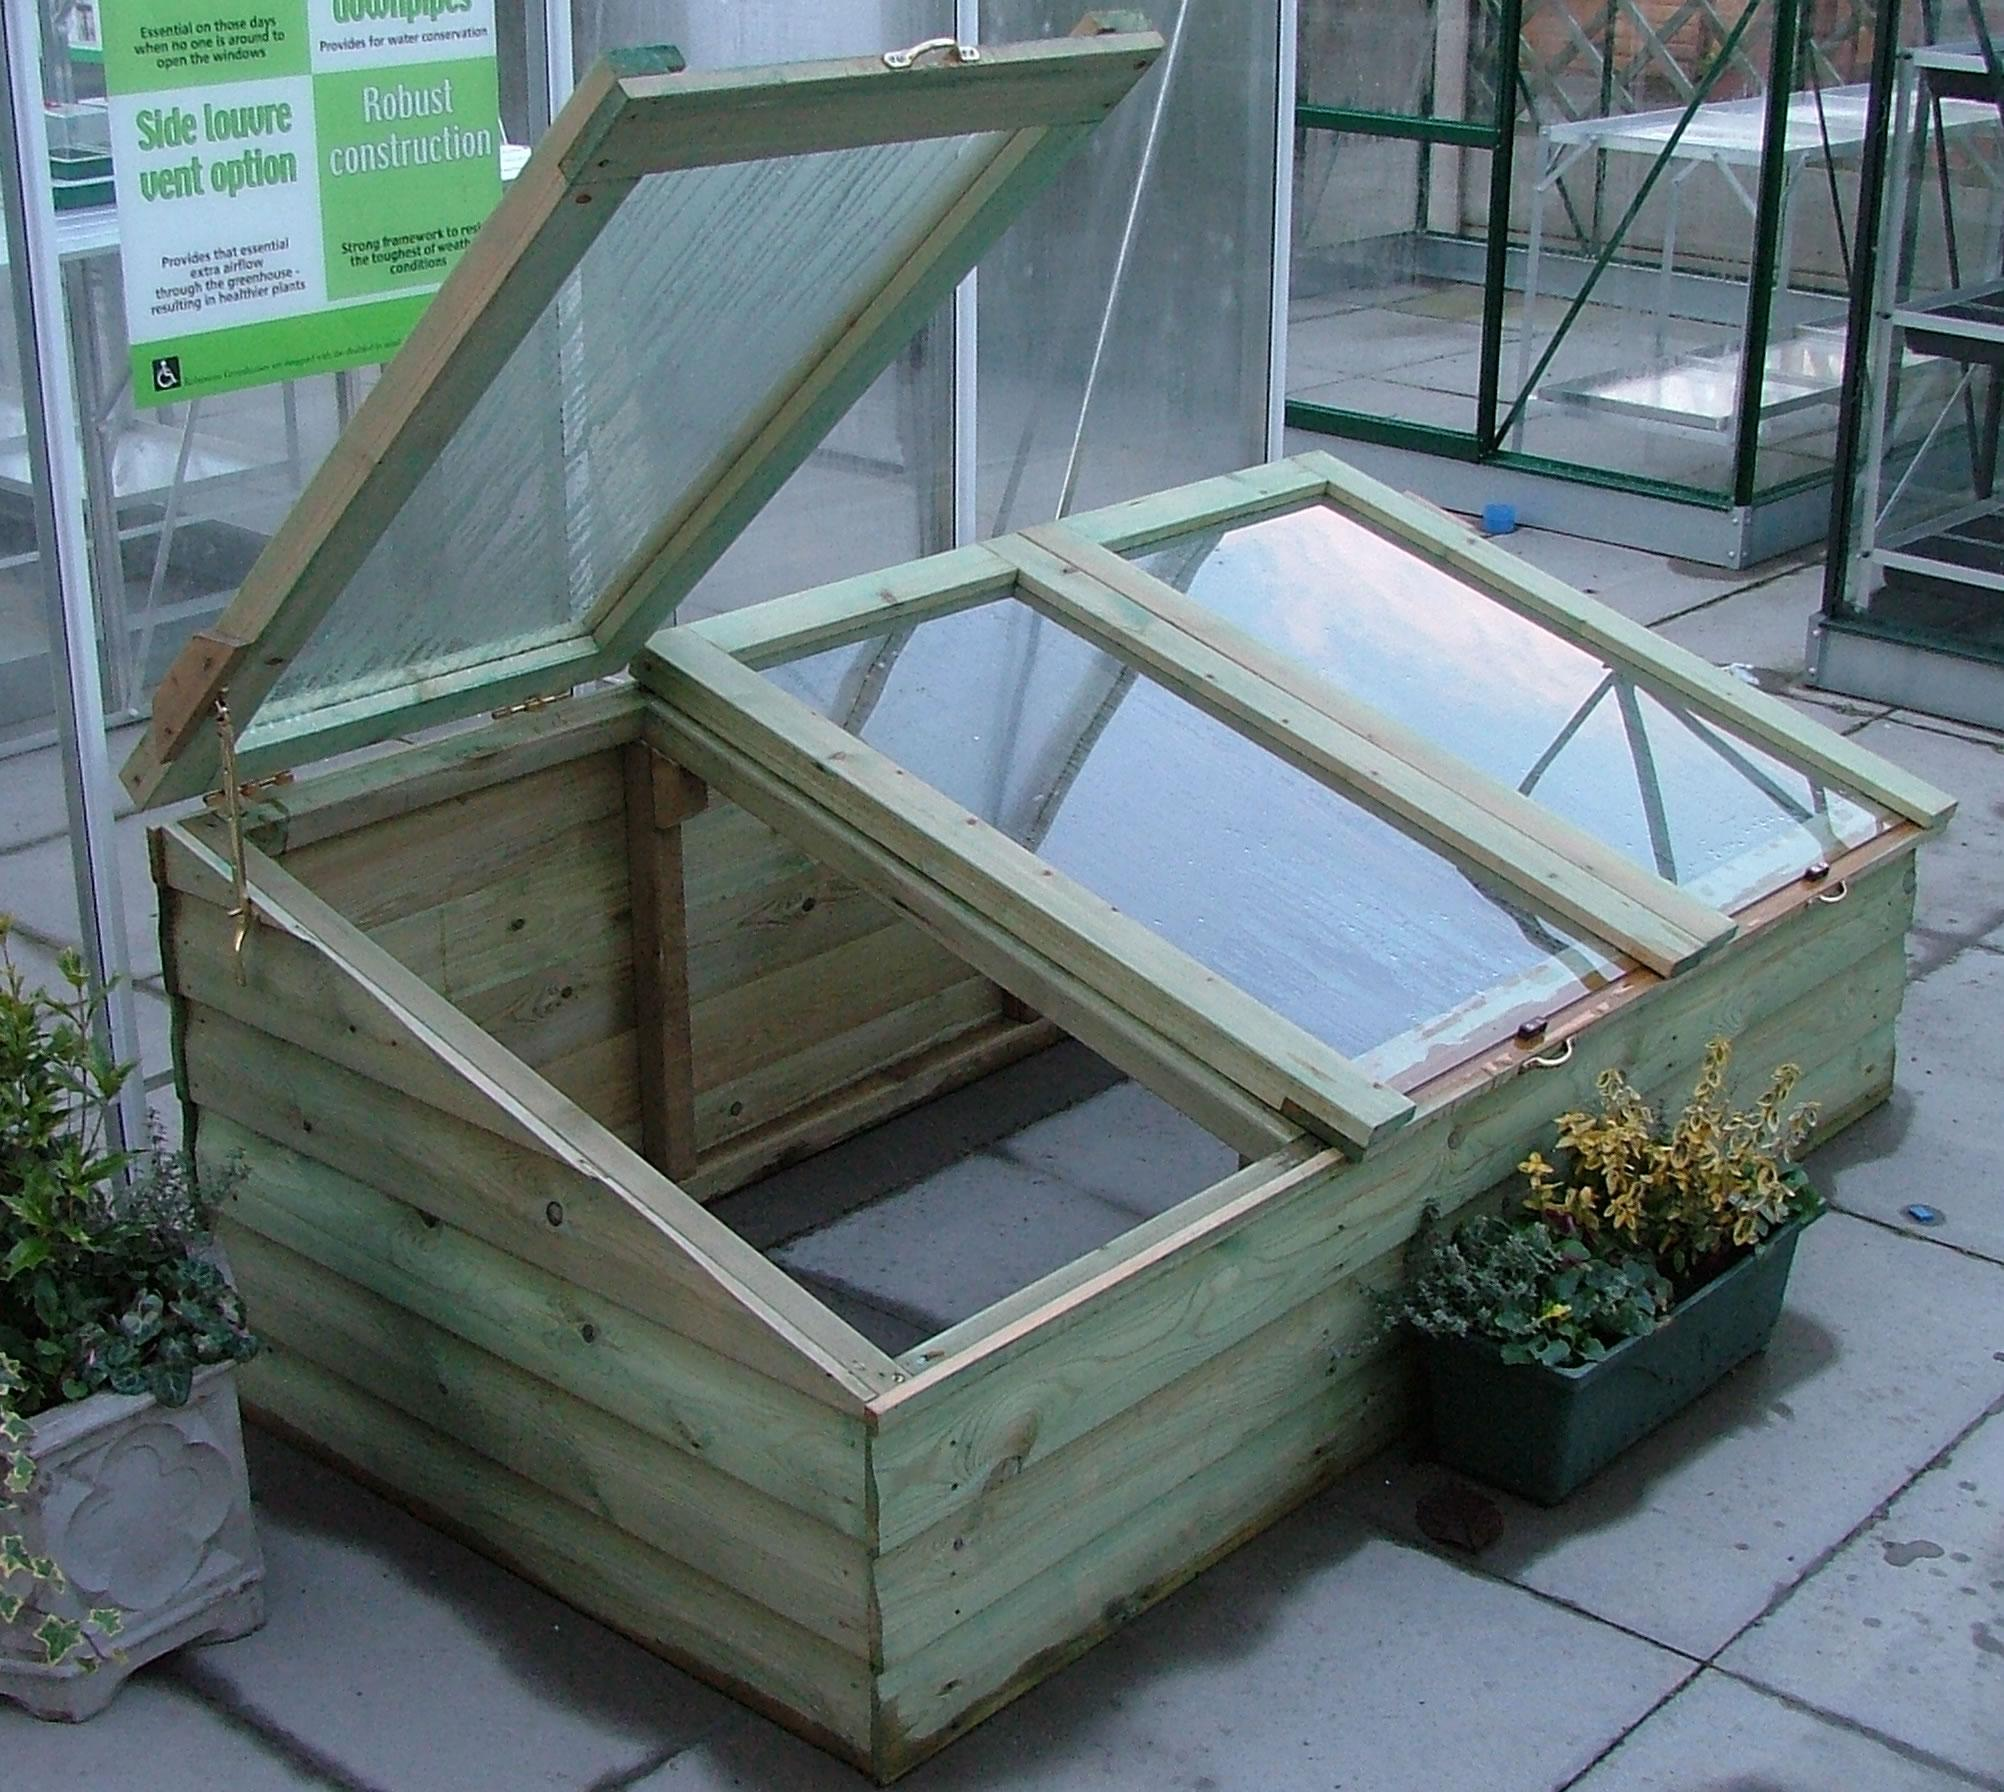 tanalised-cold-frame-3ft-x-6ft